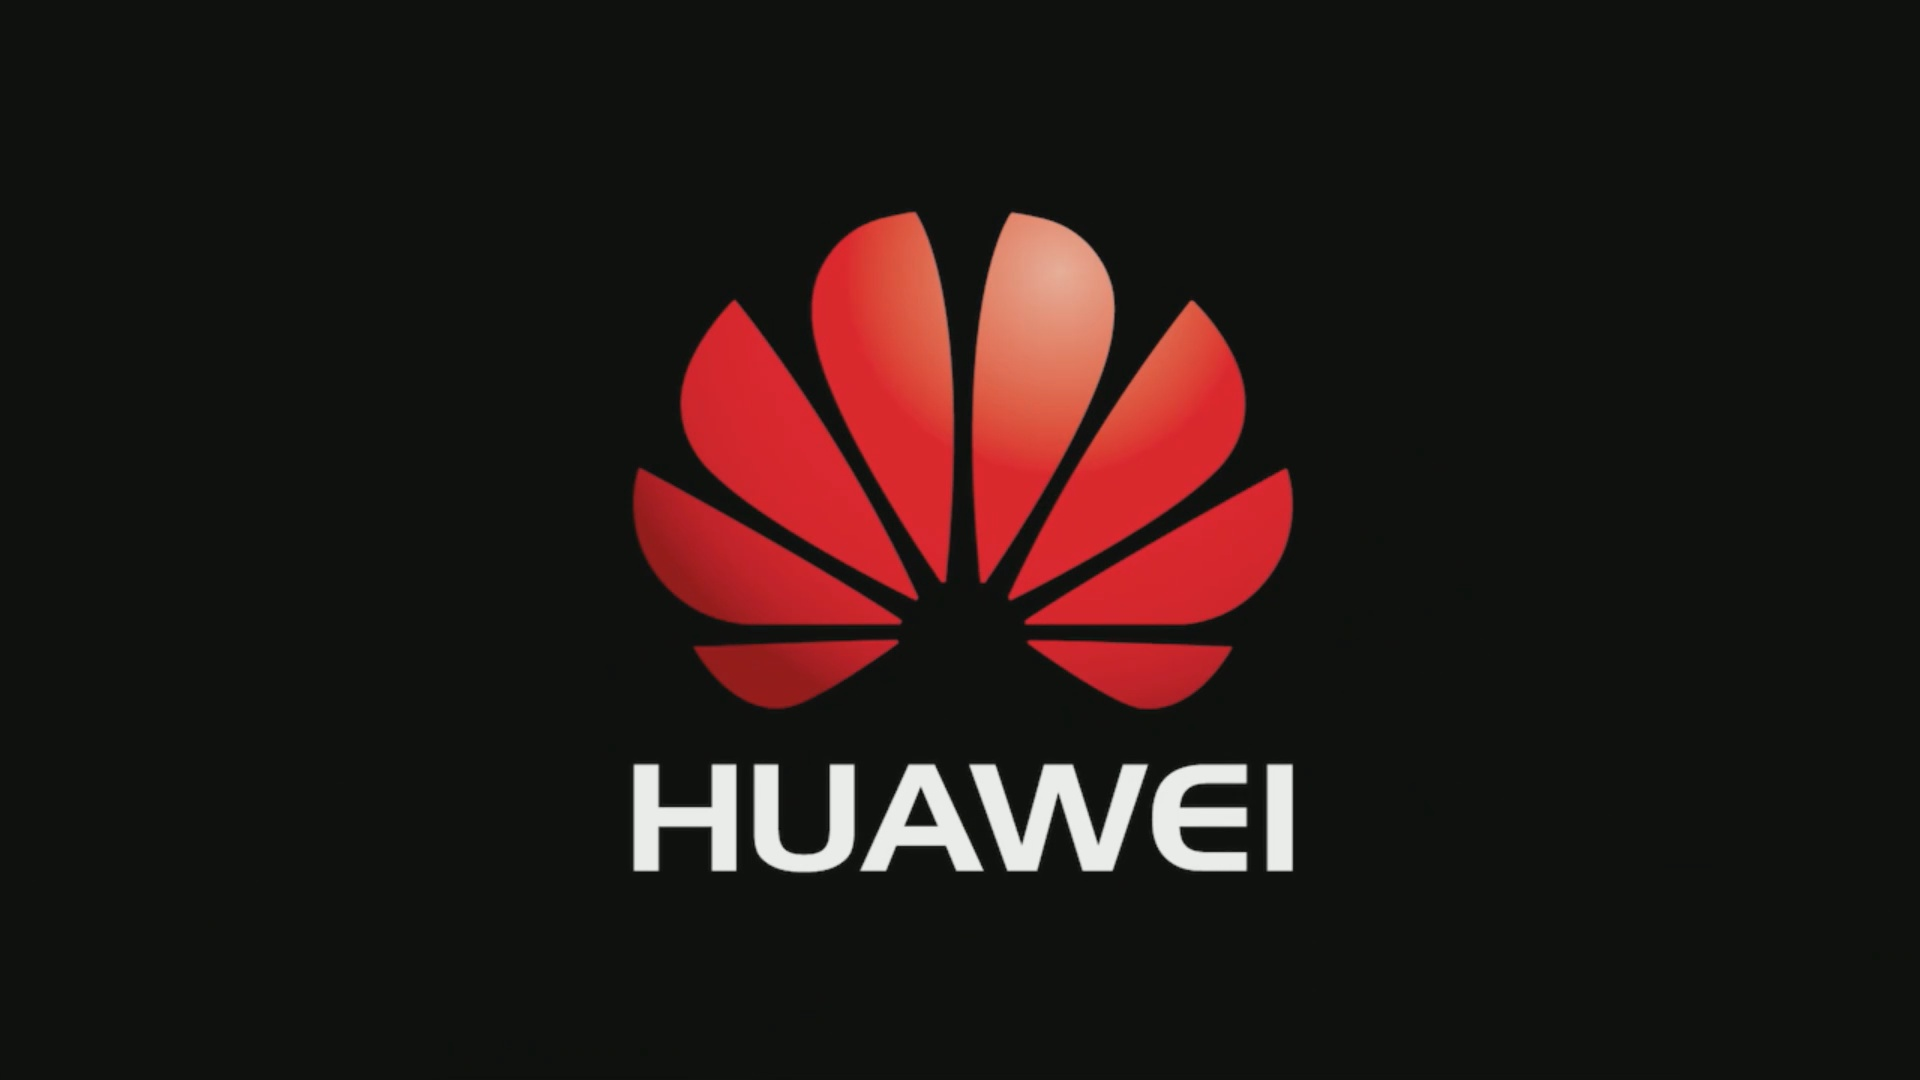 Fixed - Sound Not Works on Huawei D51 Discovery phone